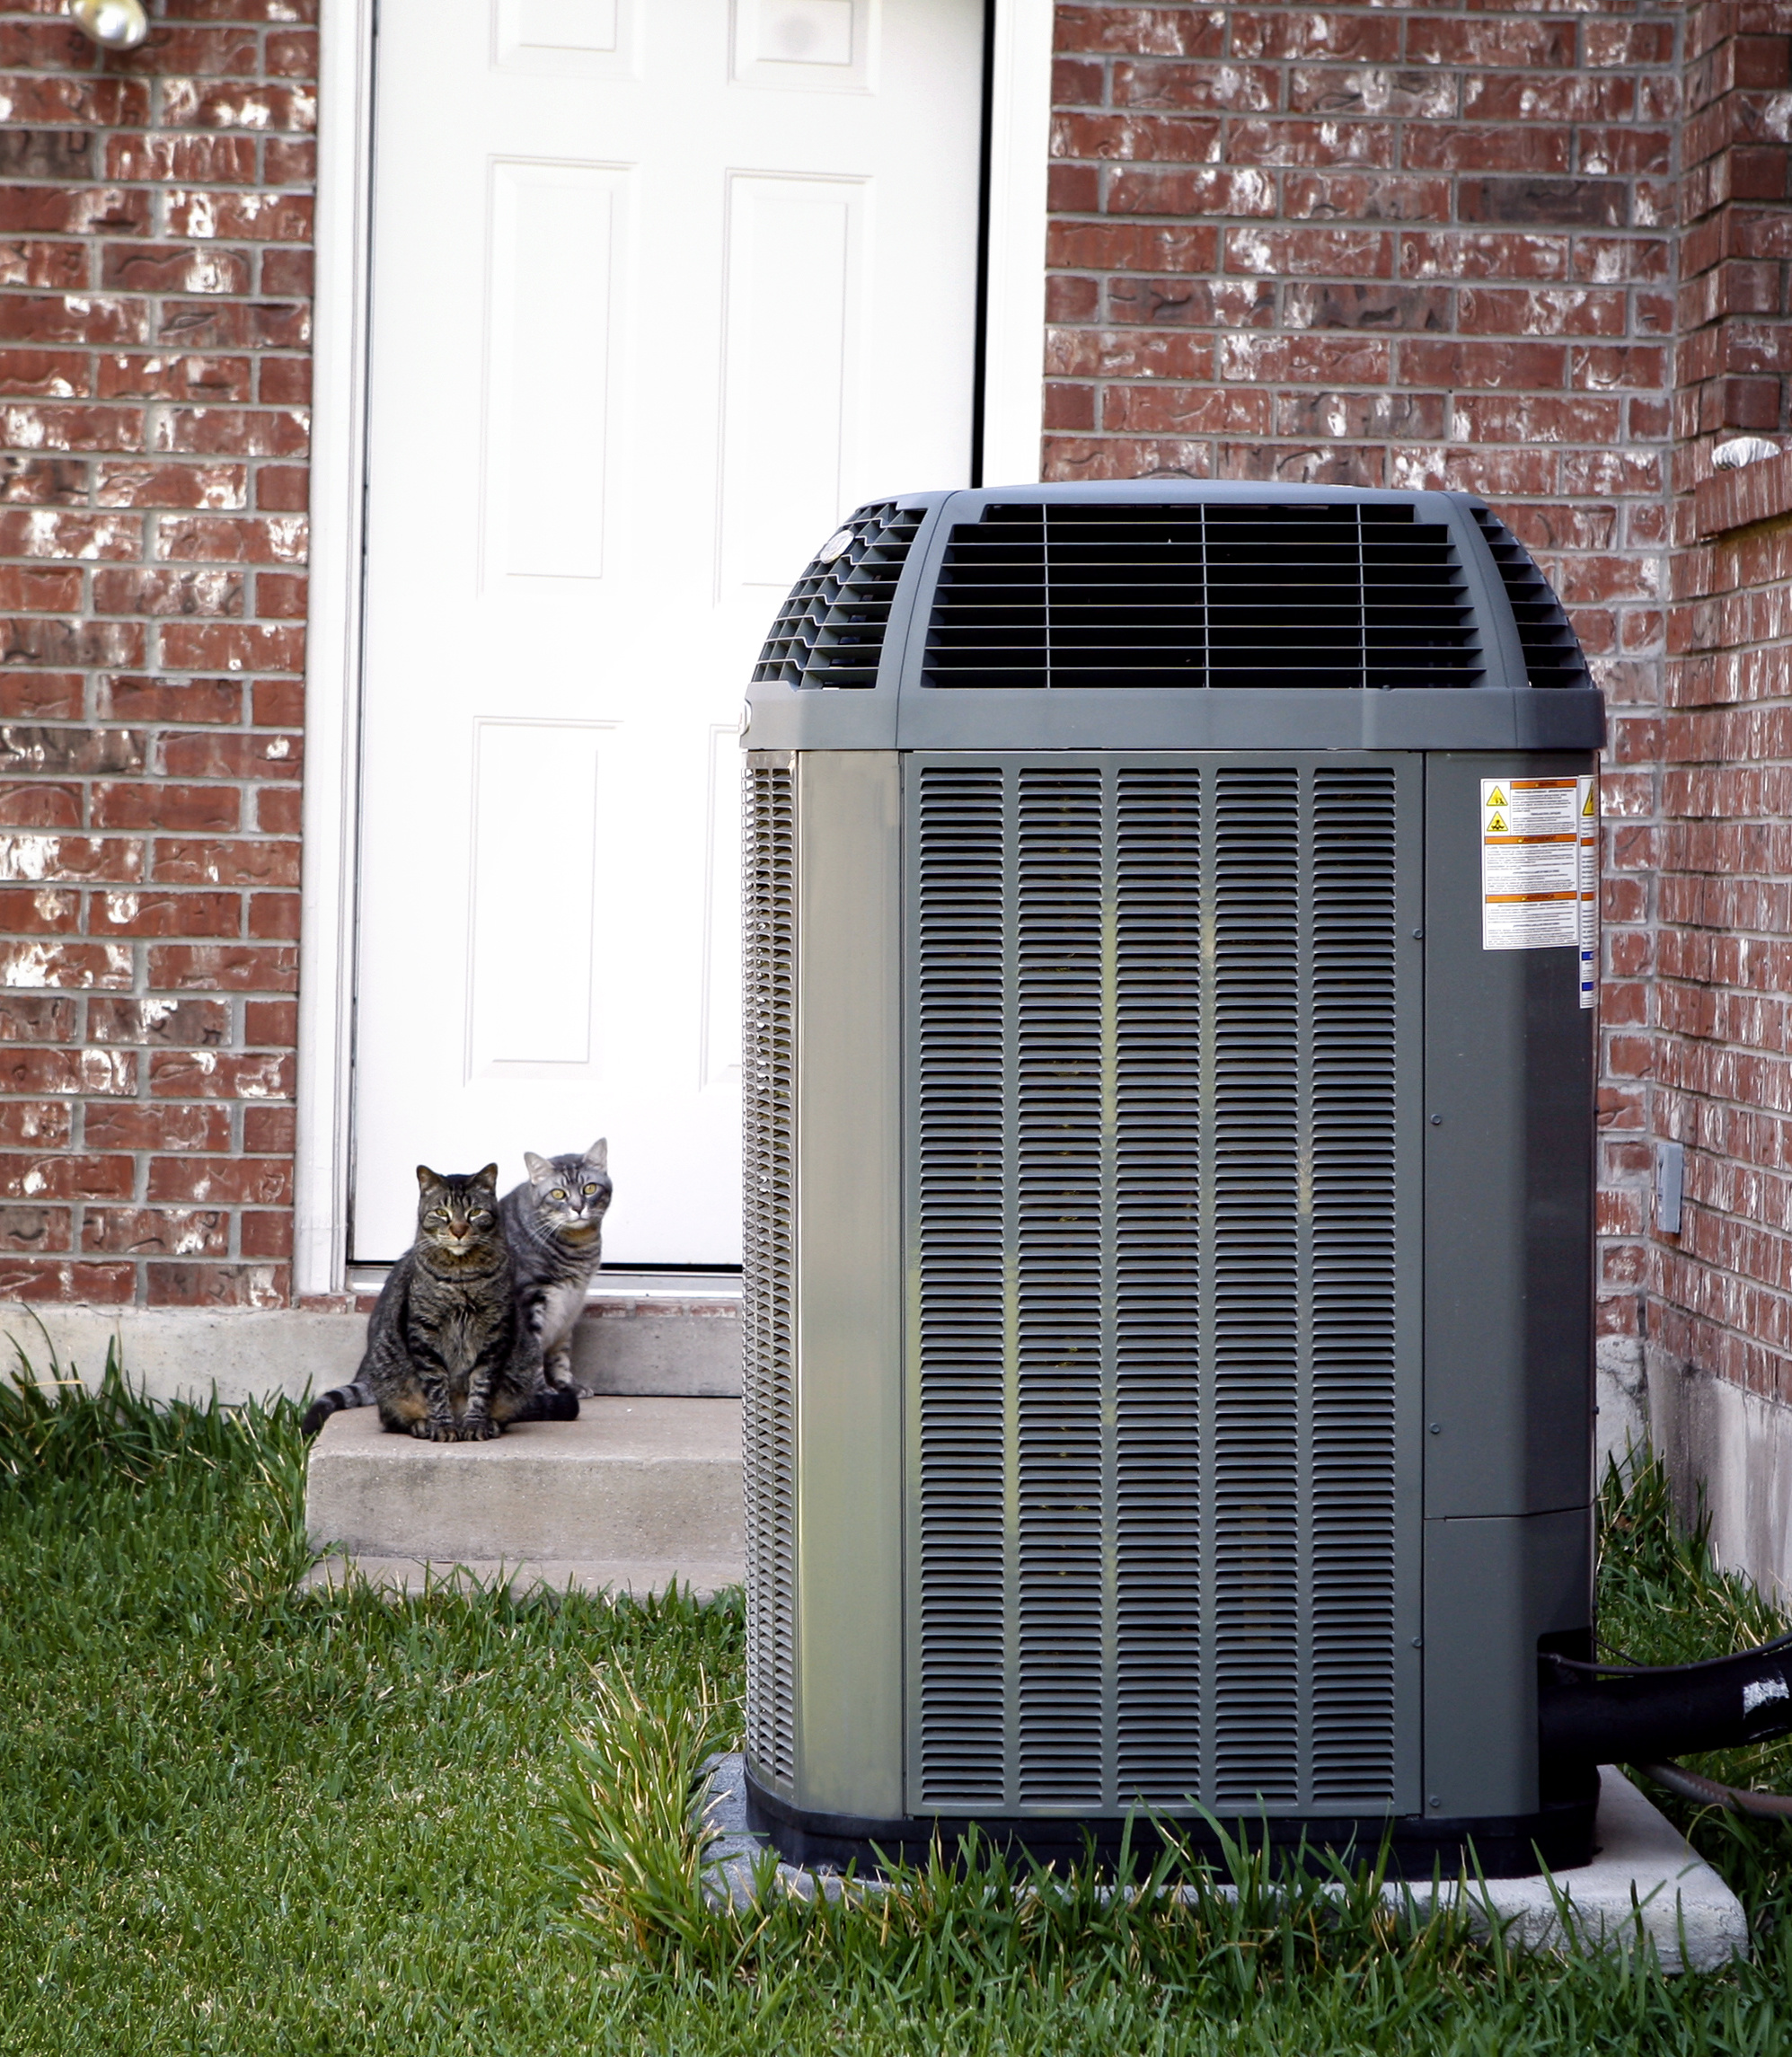 Prolong the life of your air conditioner